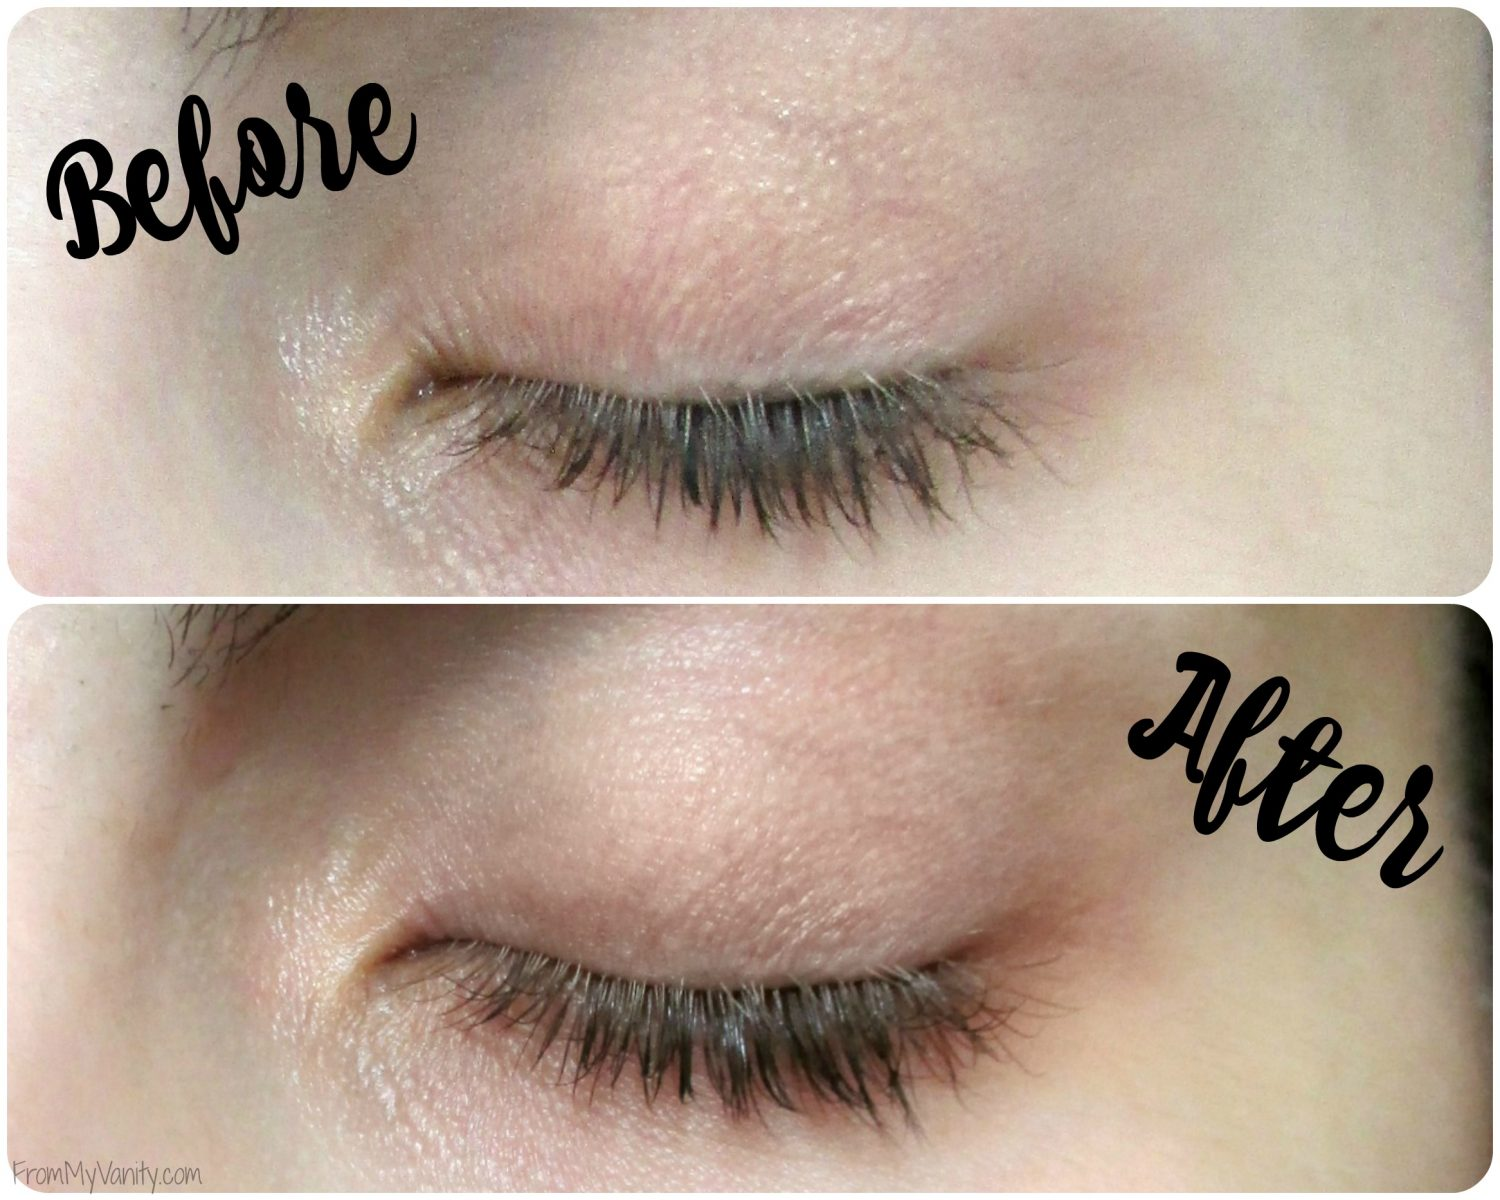 Grande Lash MD's GrandeLASH, GradePRIMER, and GrandeMASCARA Review // Before and After Pictures // 4 Weeks // #GrandeLashMD #LongLashes // FromMyVanity.com